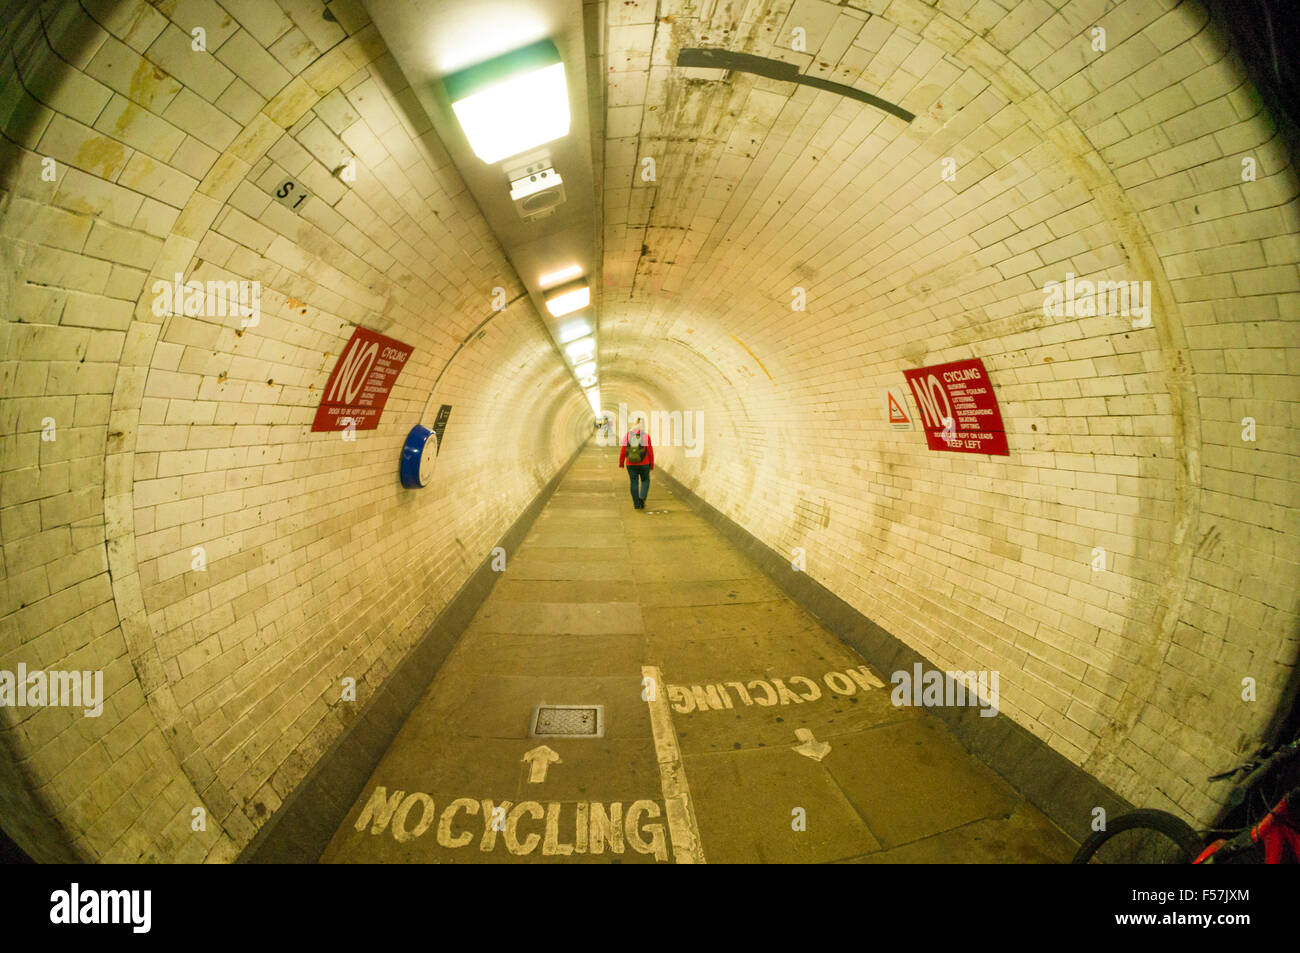 Greenwich foot tunnel going under the river Thames linking Greenwich and isle of Dogs London England GB UK EU Europe - Stock Image